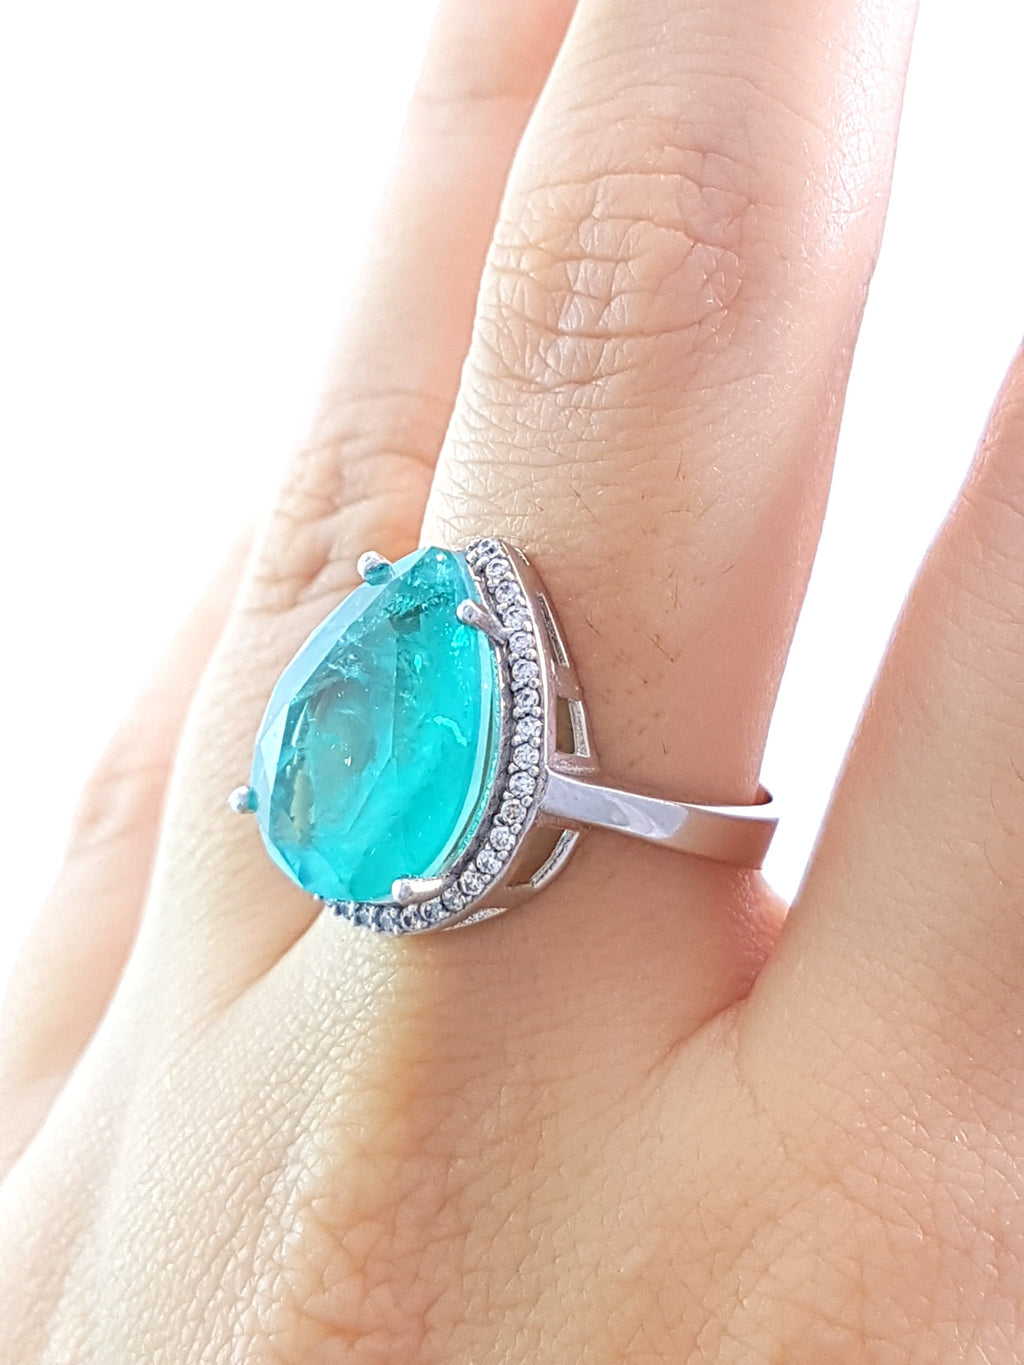 Green Paraiba Ladies Ring S 8 New Turkish Wholesale Handmade 925 Sterling Silver Jewelry R1695 - Turkishsilverjewelry